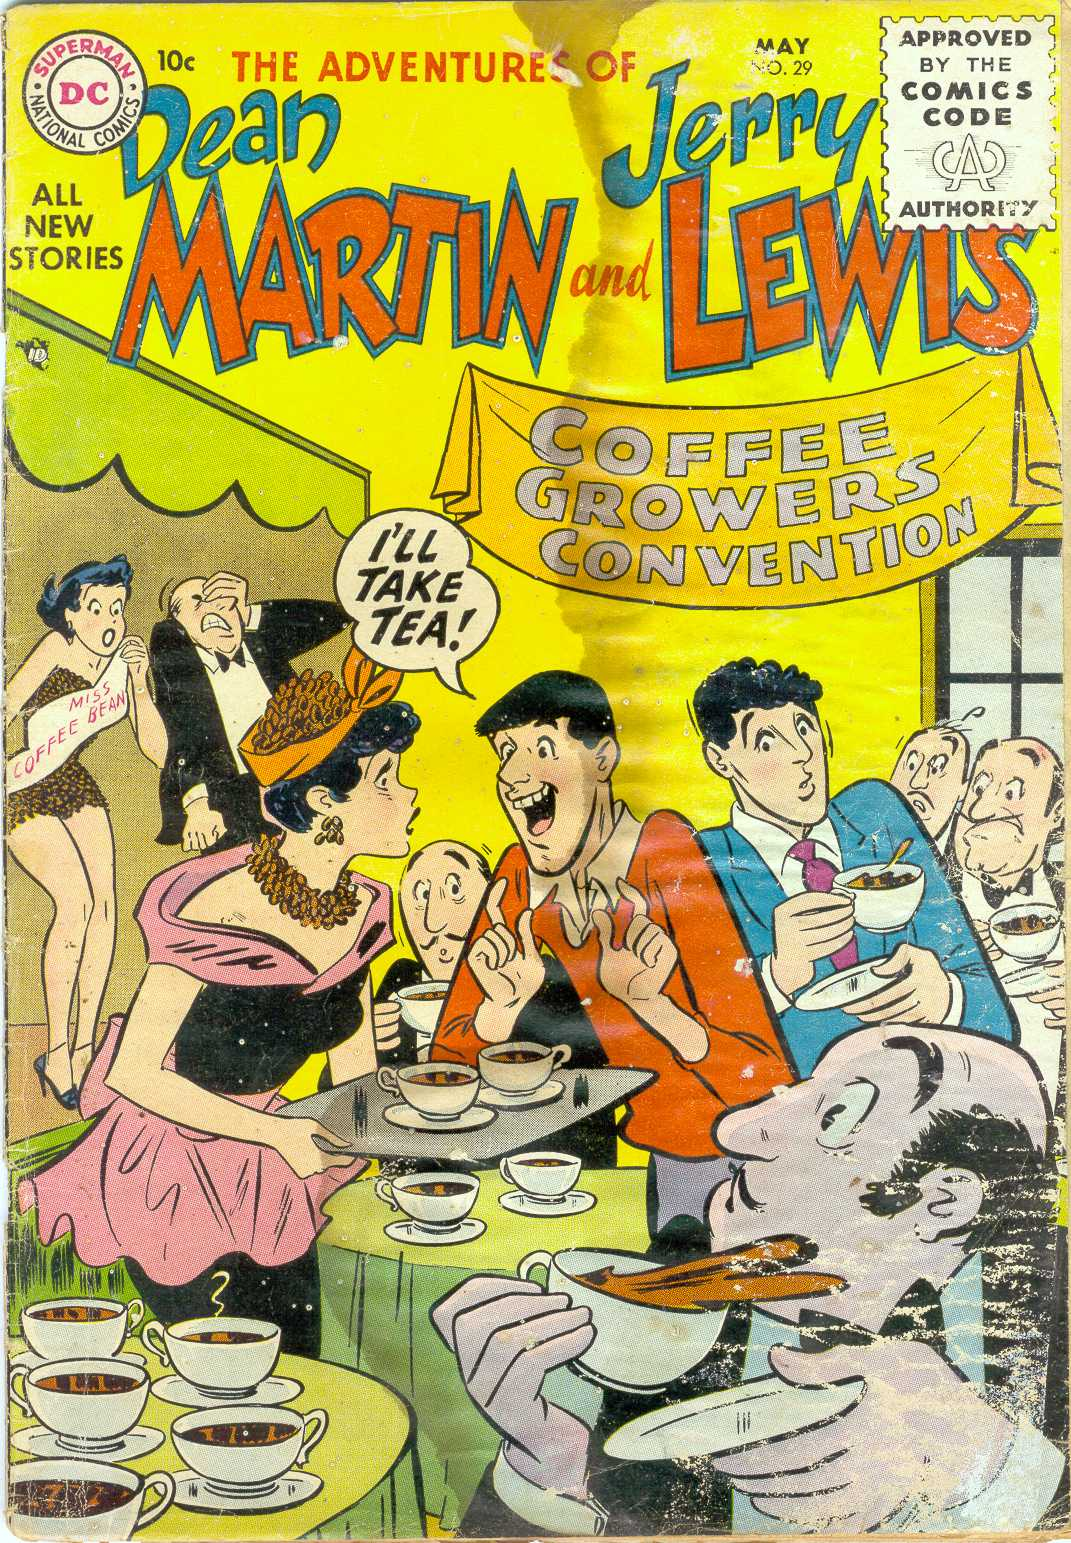 The Adventures of Dean Martin and Jerry Lewis 29 Page 1